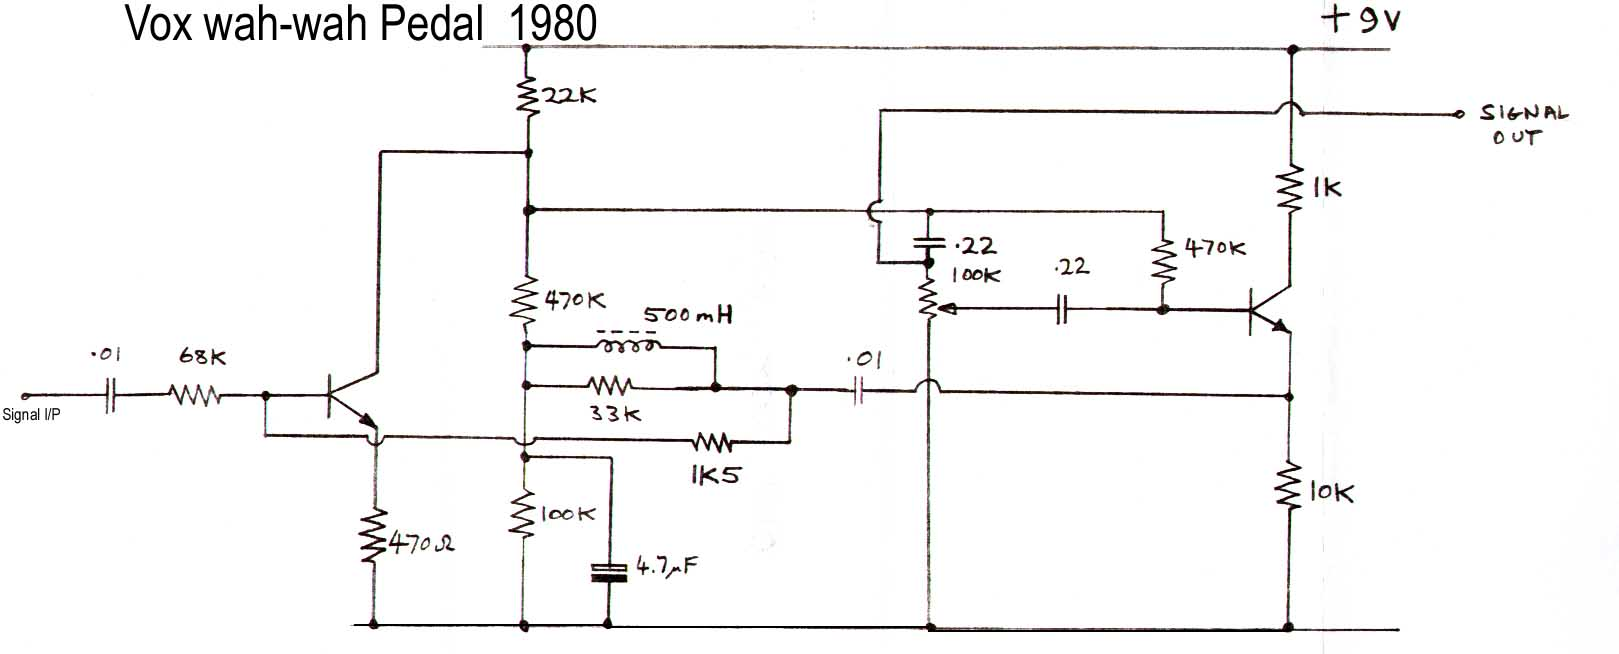 Vox Vintage Circuit Diagrams Distortion Pedal Wiring Diagram Wah 1980 Download